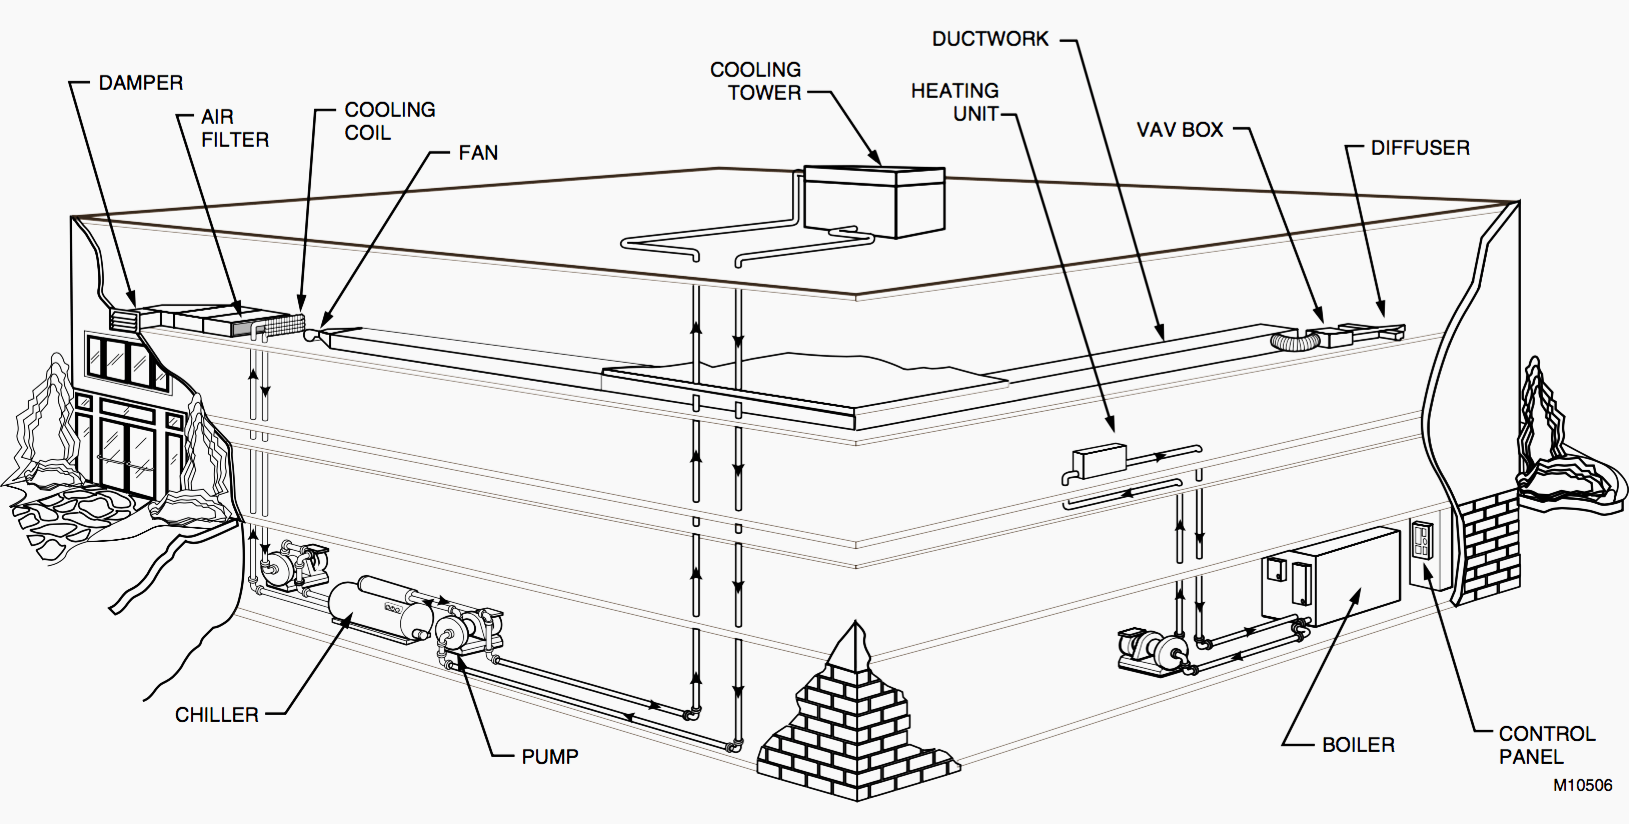 hight resolution of typical hvac system in a small building